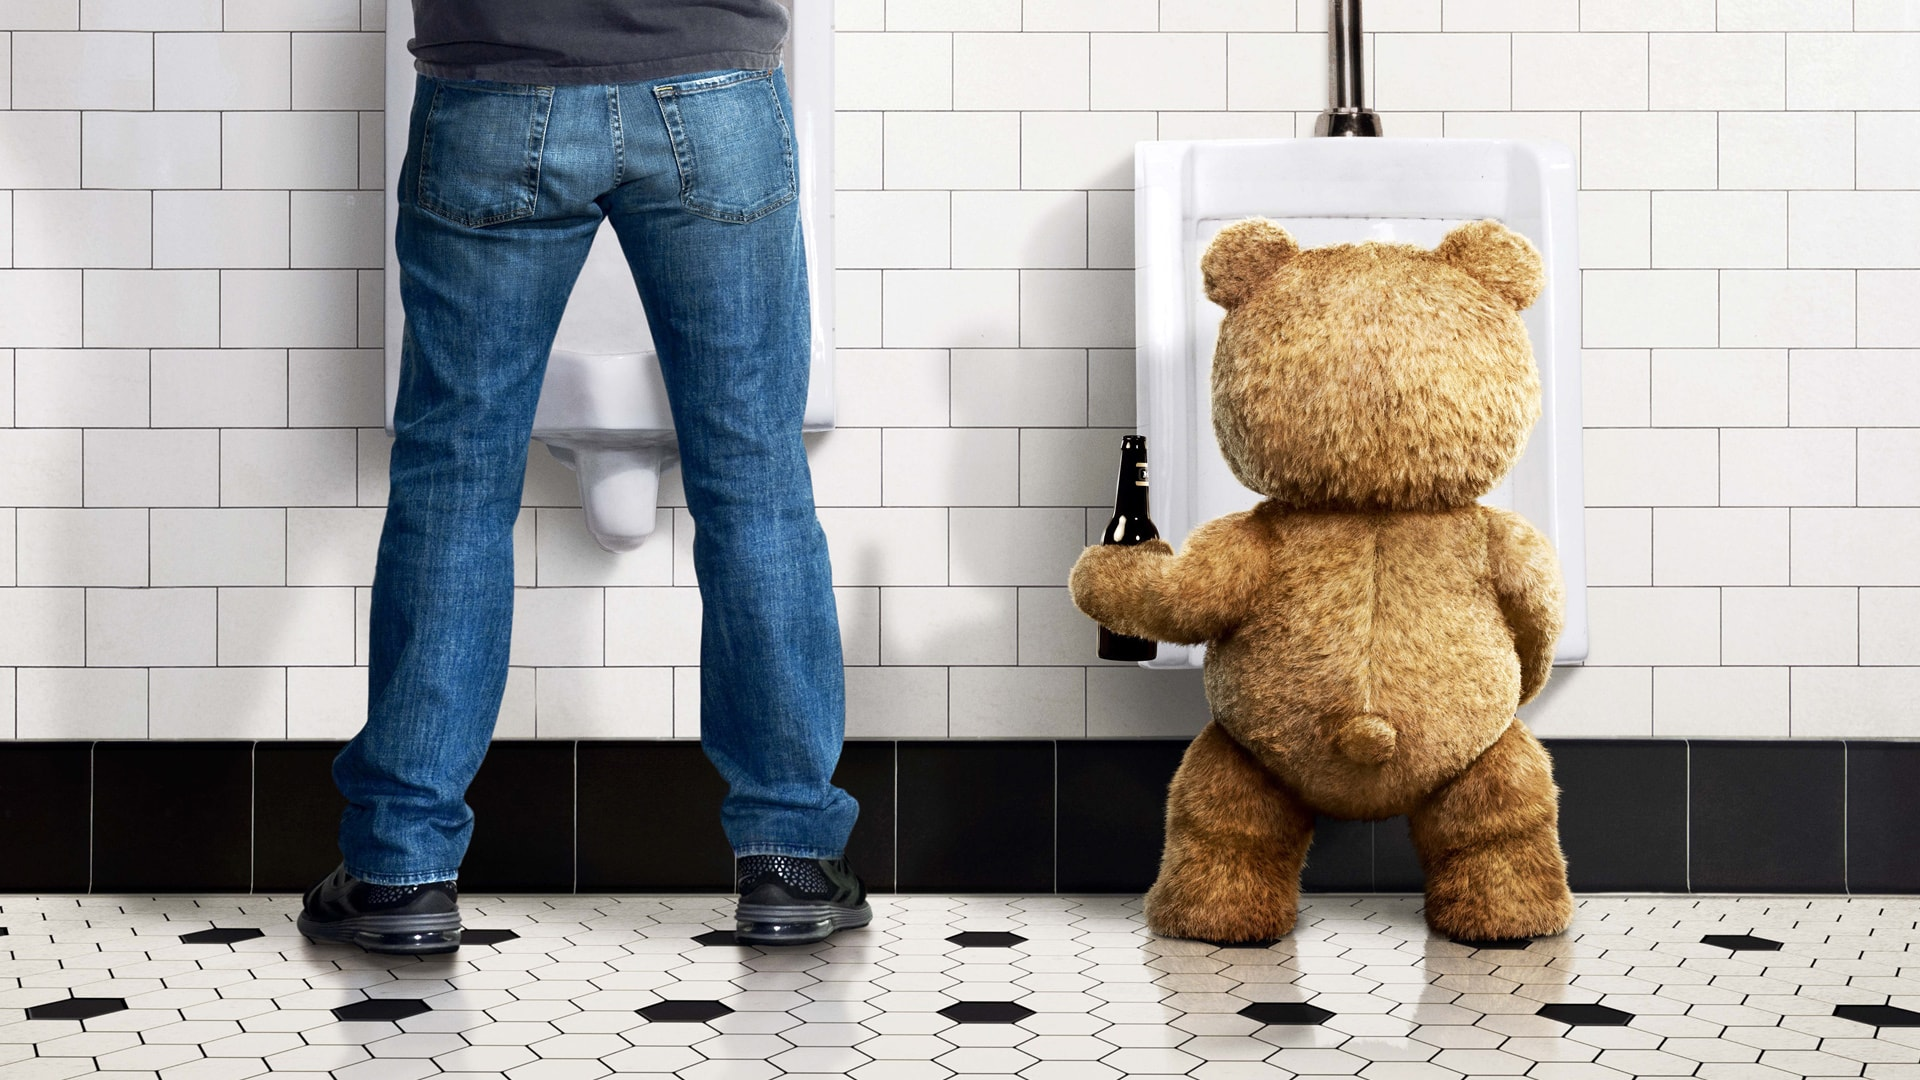 Ted 2 full hd wallpapers